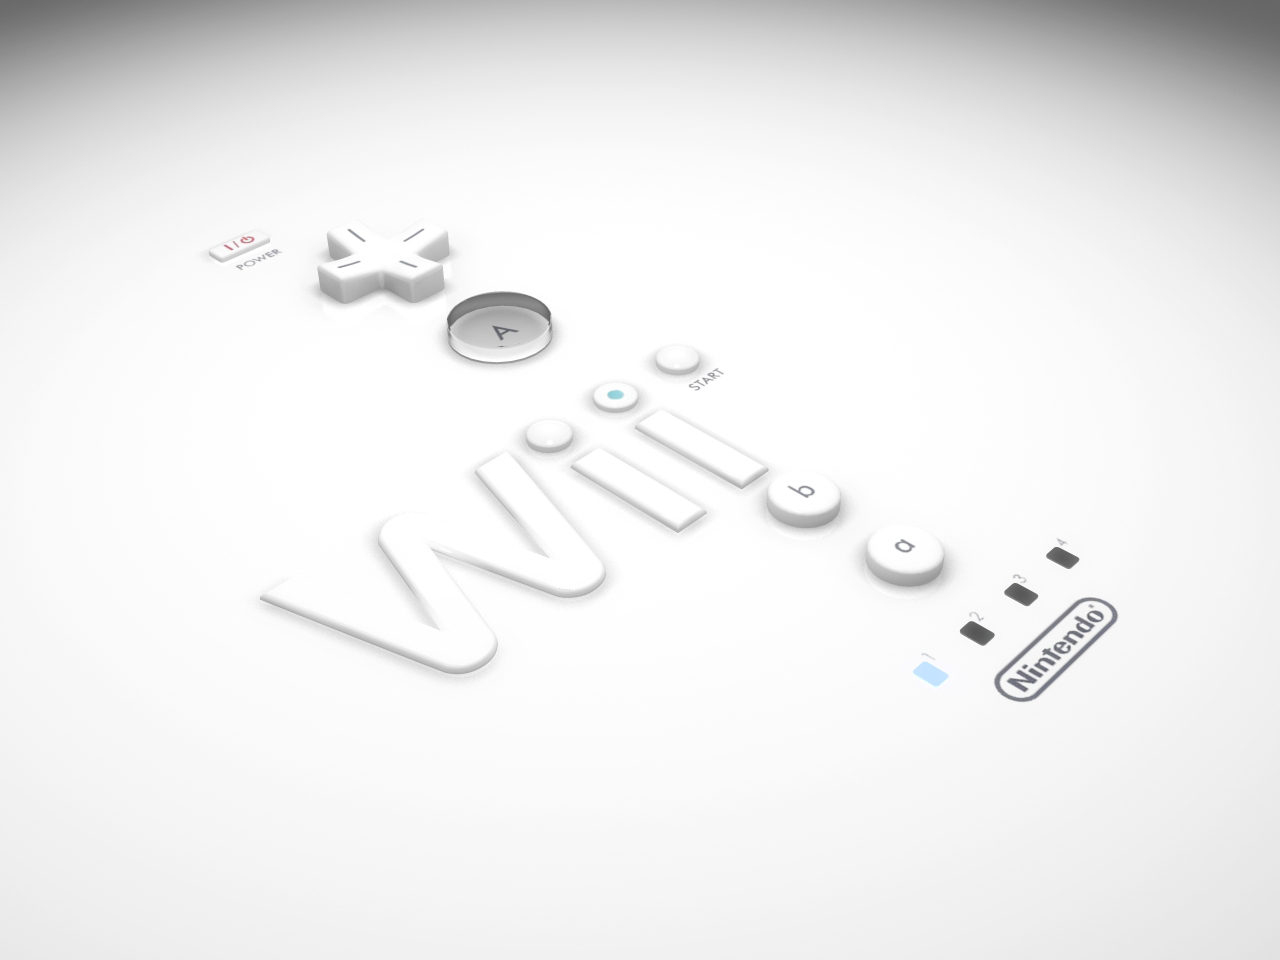 Wii wallpaper 9 by S3R Wii wallpaper 9 by S3R